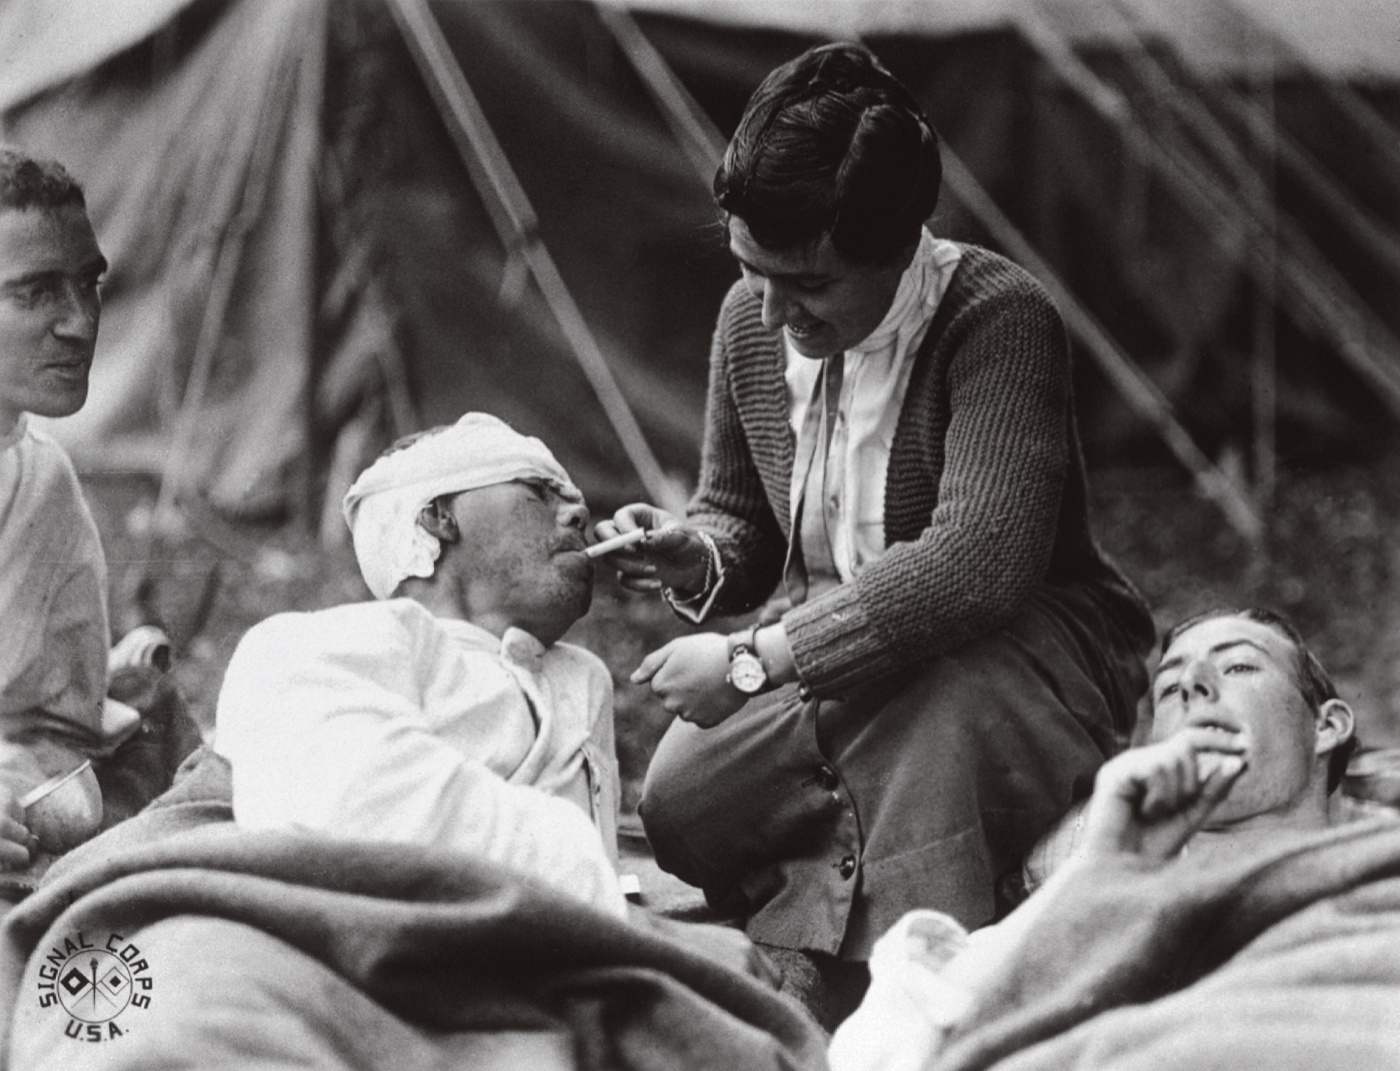 A WWI nurse administers to wounded soldiers